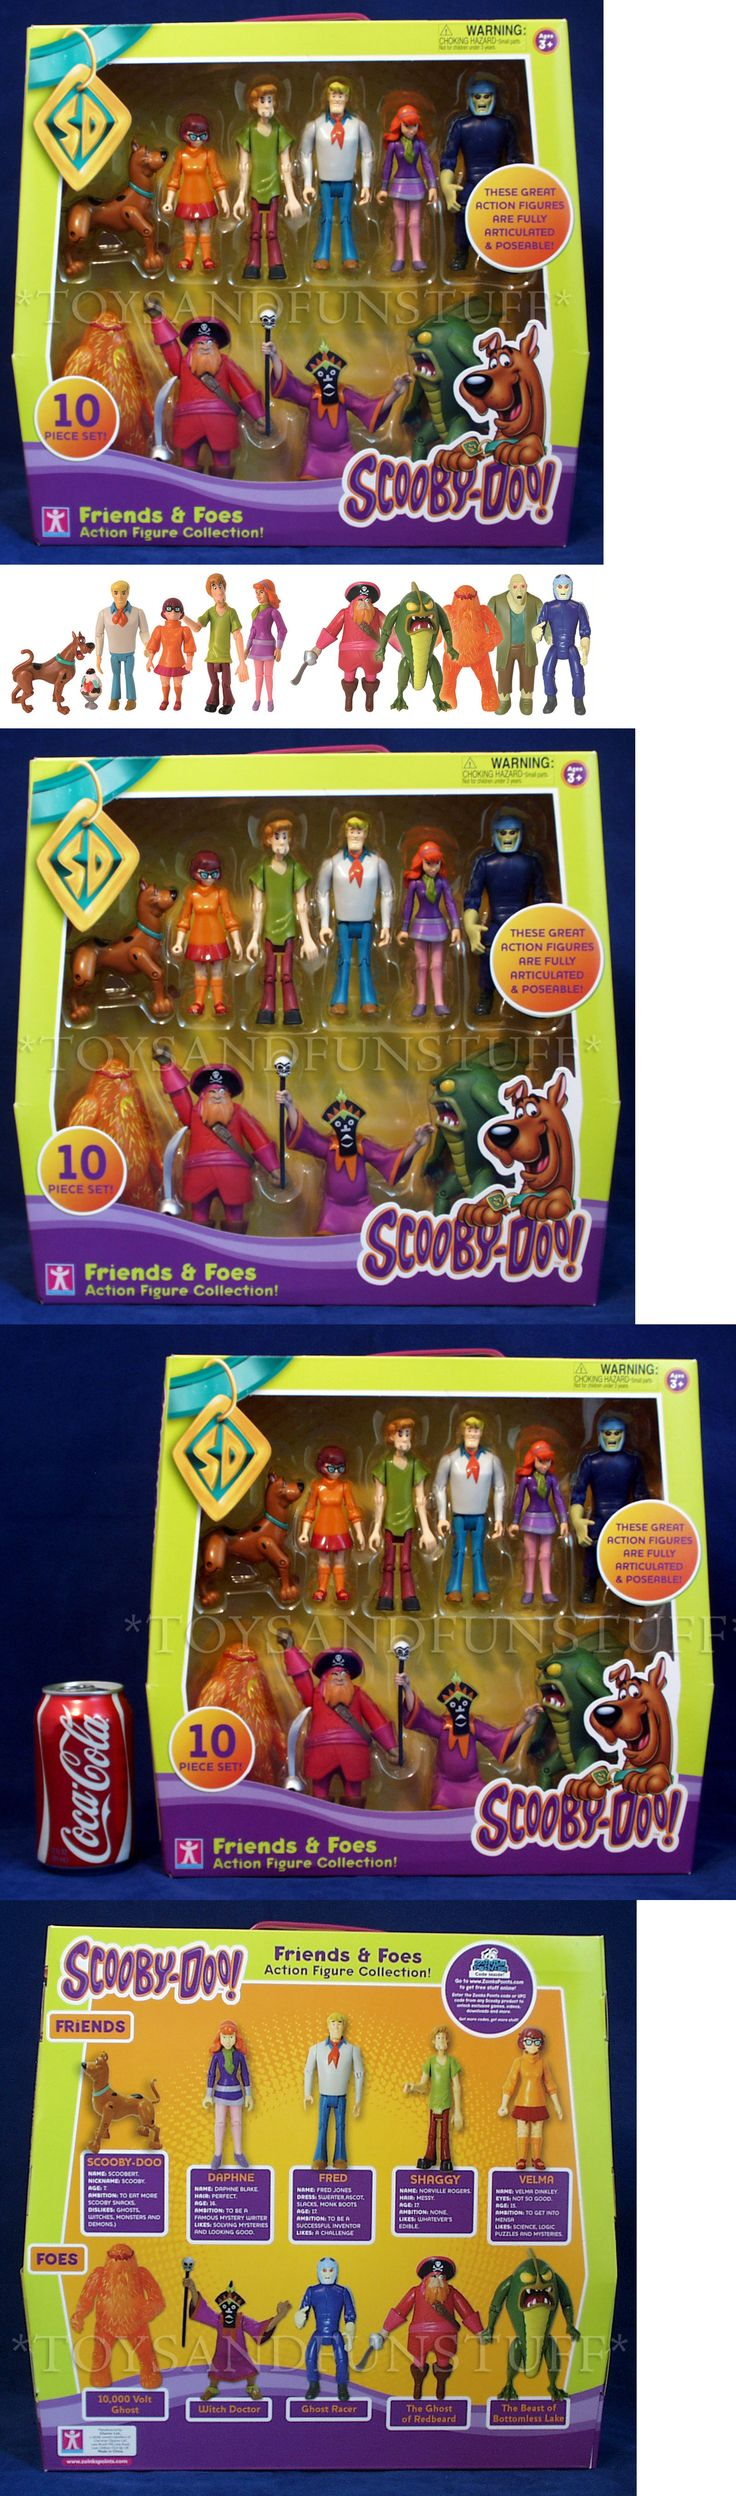 Scooby-Doo 11747: New - Scooby Doo Friends And Foes 10 Action Figures Ghost Racer Redbeard Villains -> BUY IT NOW ONLY: $74.95 on eBay!